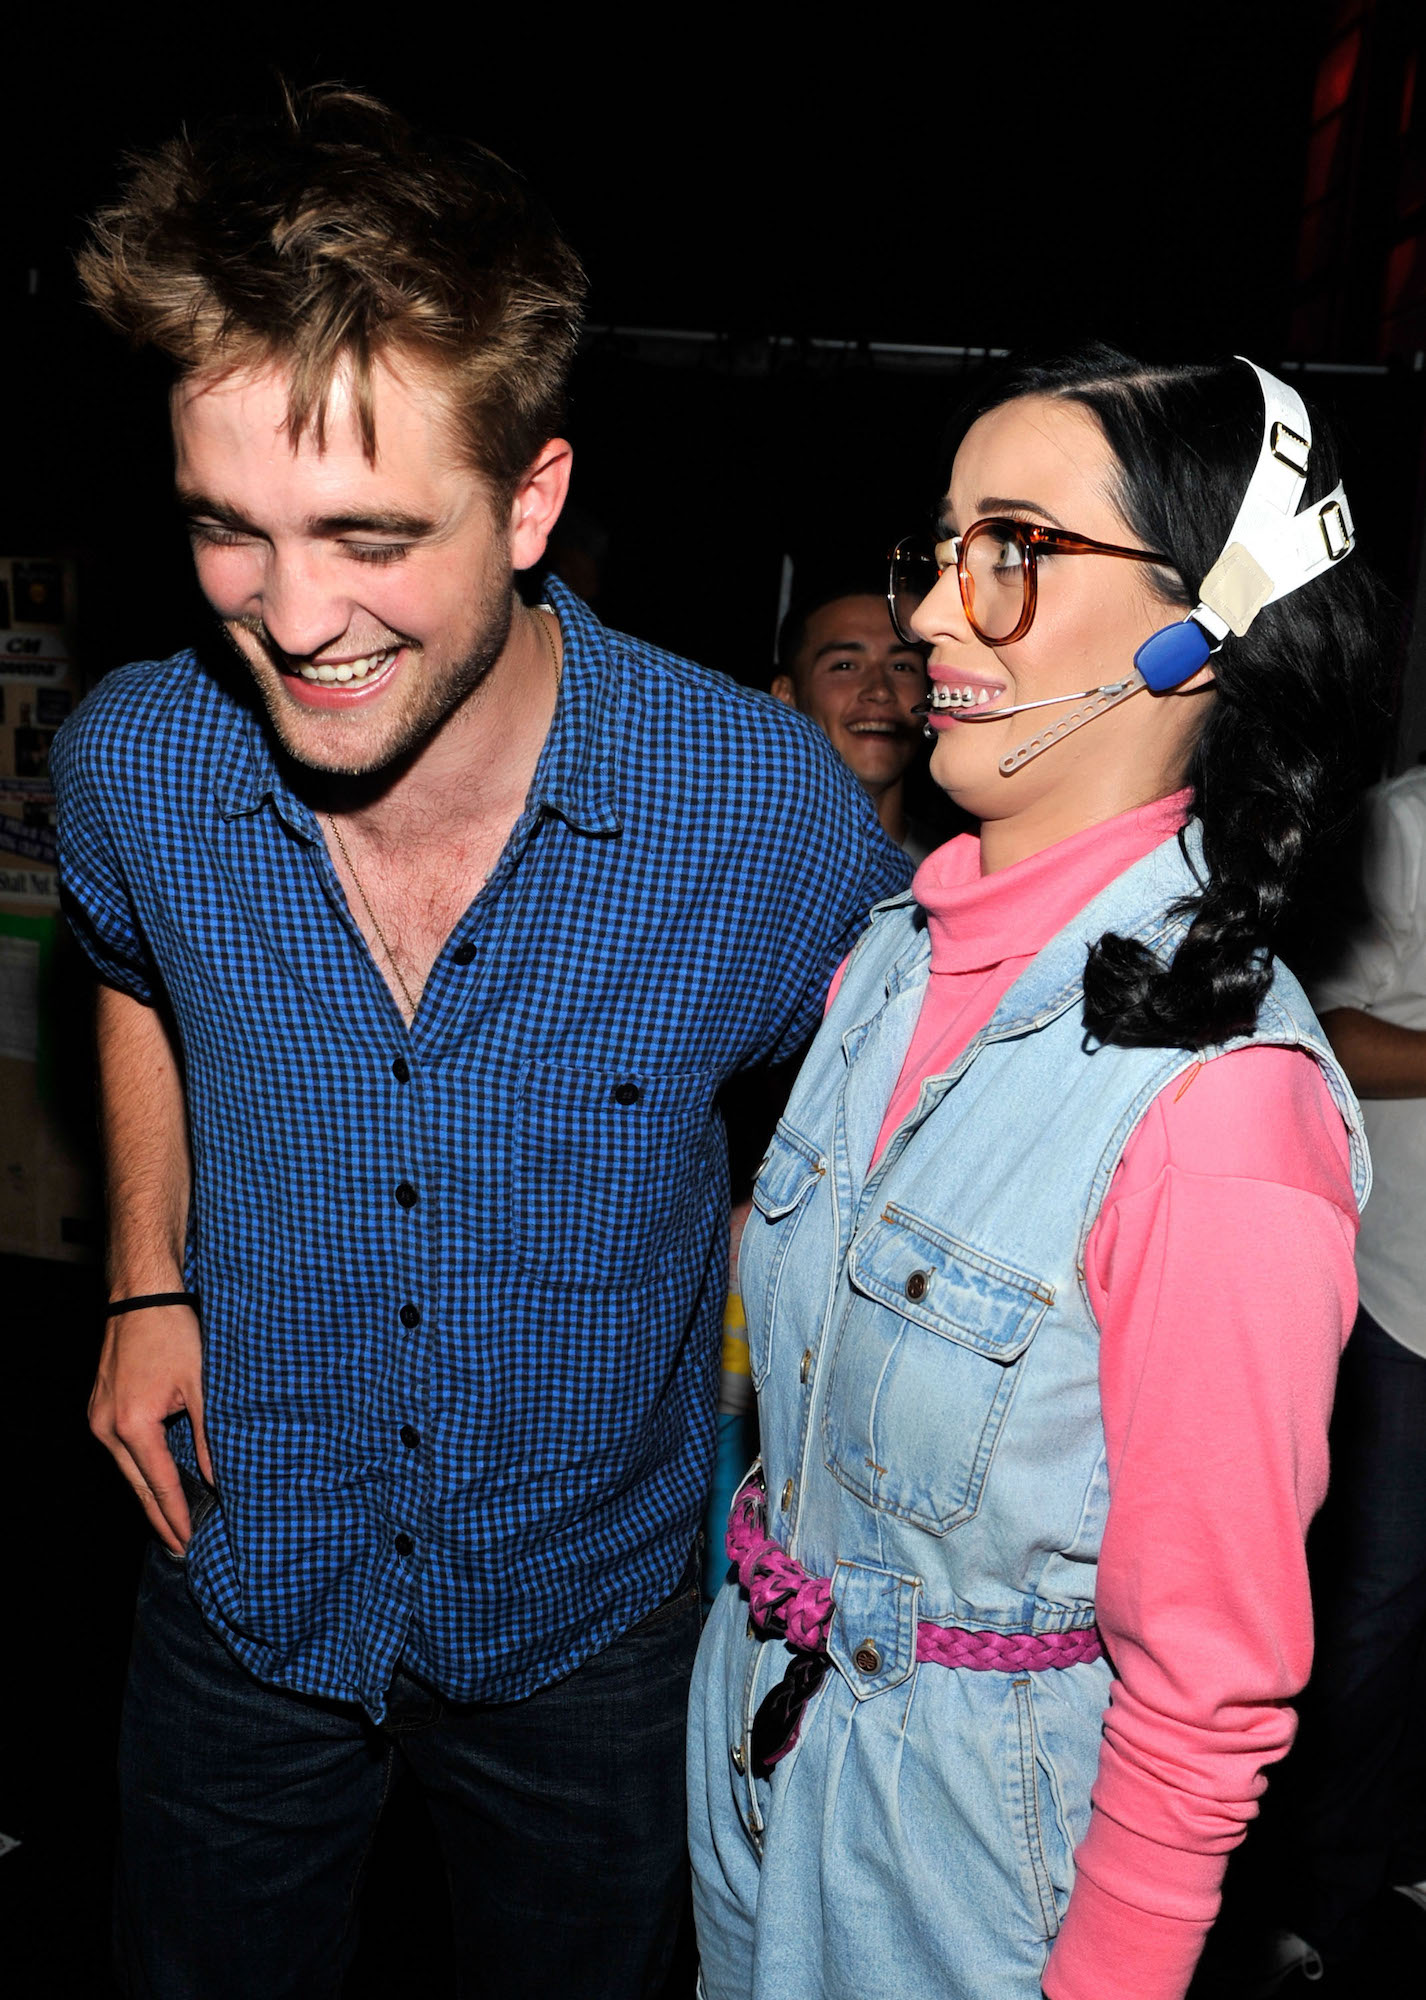 Robert Pattinson and host Katy Perry at the 2010 Teen Choice Awards on Aug. 8, 2010.